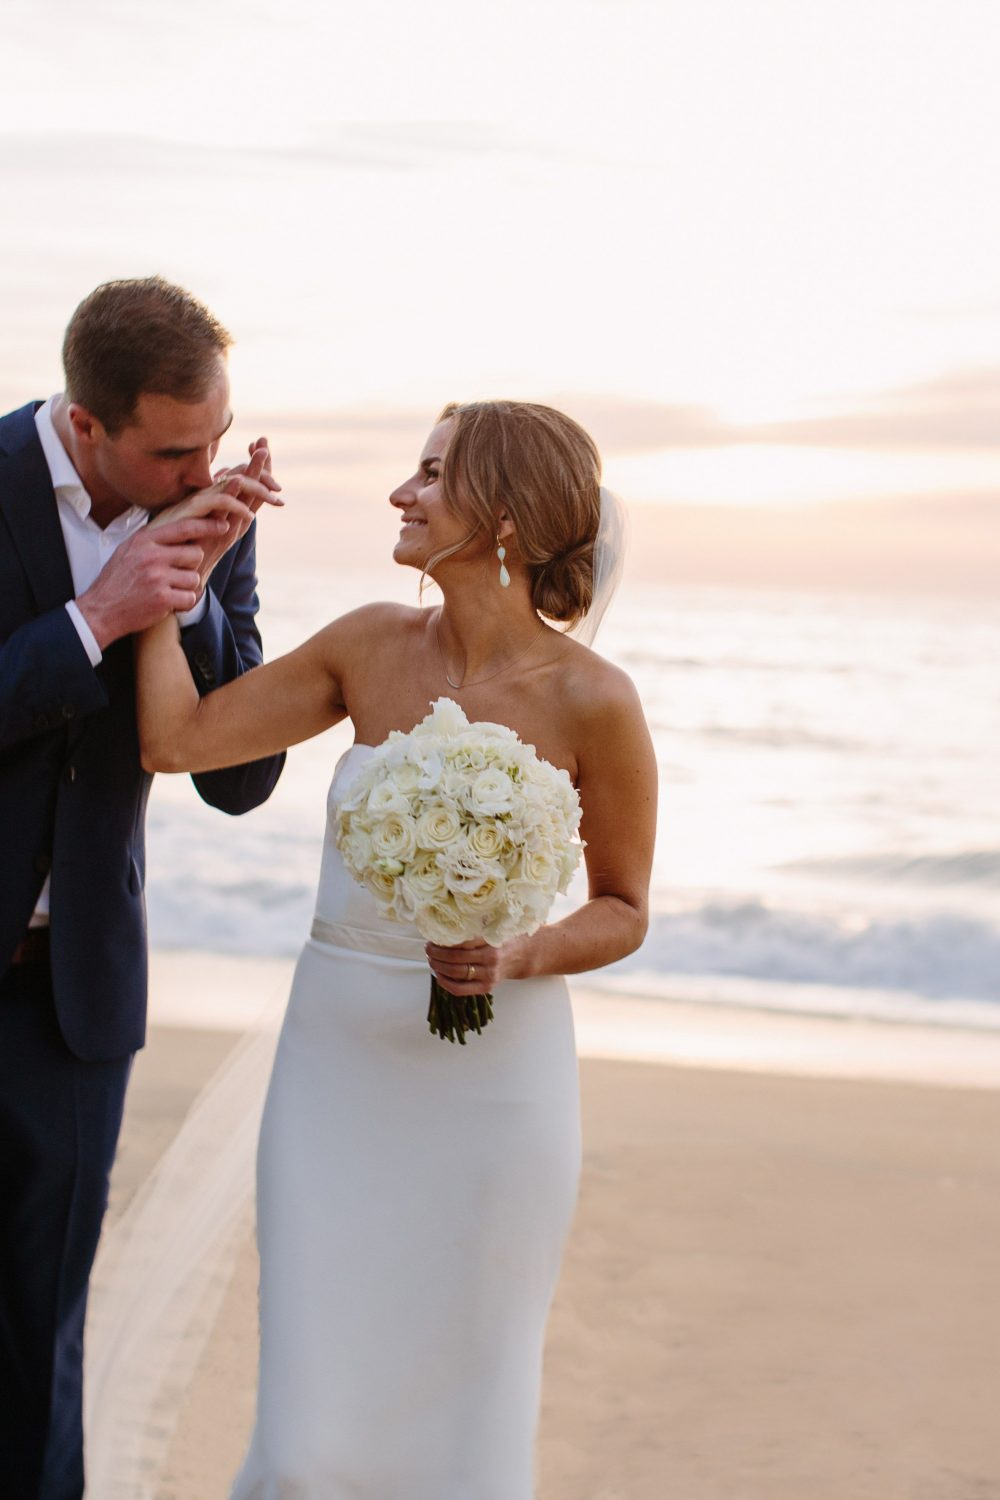 groom kisses bride's hand on the beach at sunset at this Sayulita Mexico destination wedding